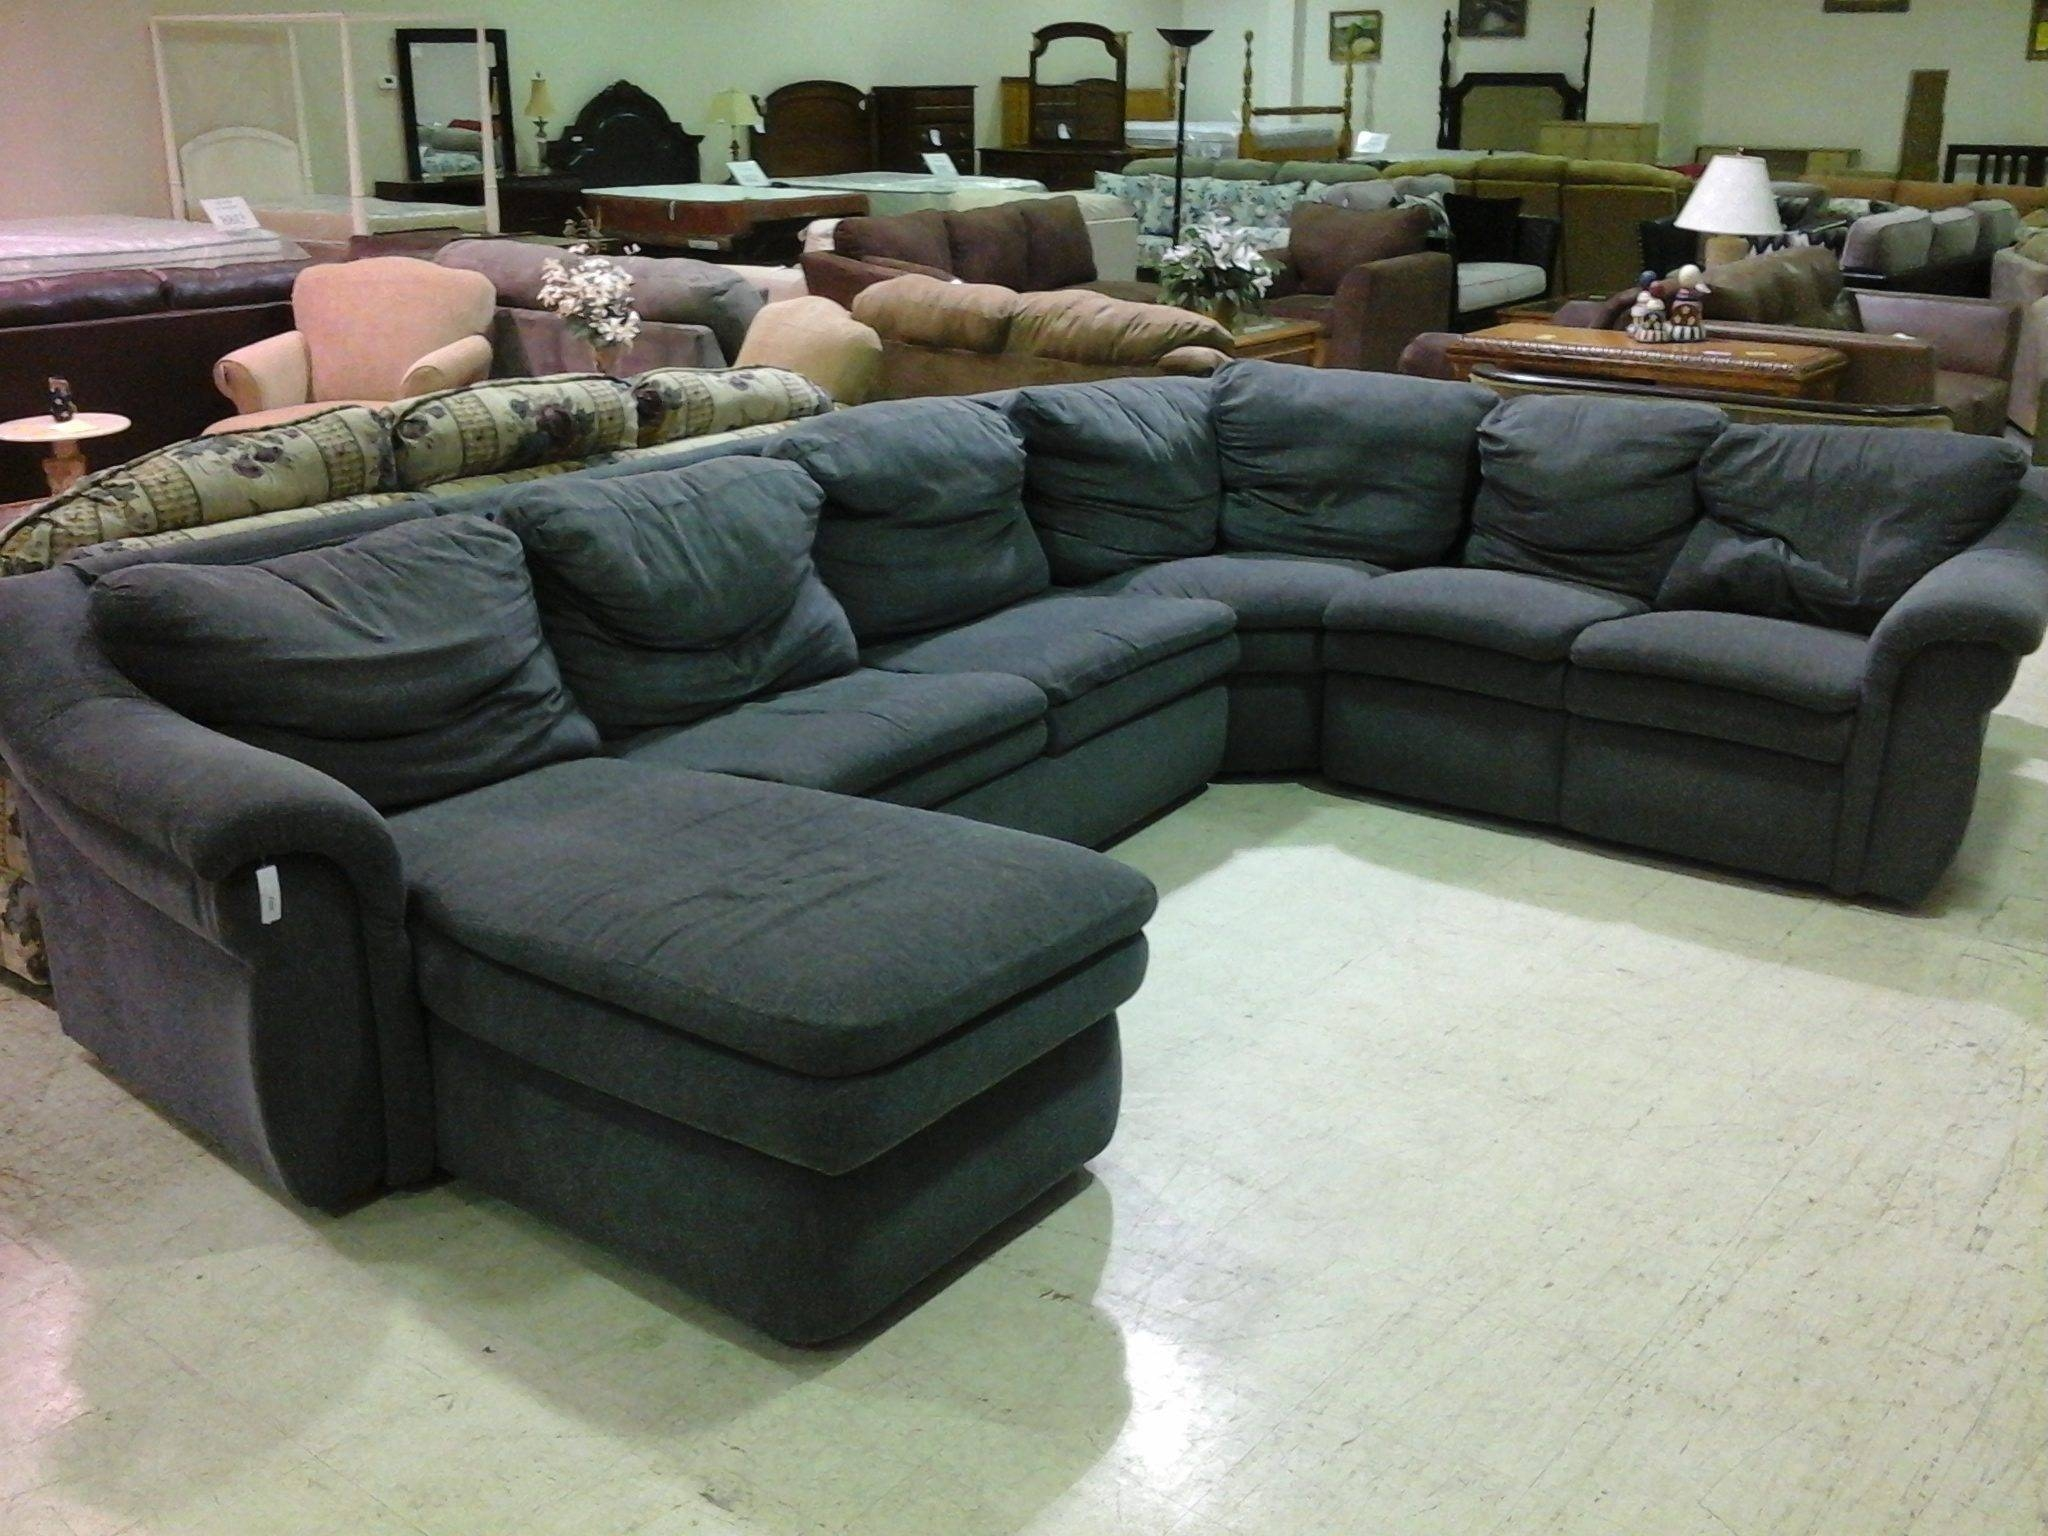 Interior: Appealing L Shaped Sleeper Sofa For Your Living Room within L Shaped Sectional Sleeper Sofa (Image 14 of 25)